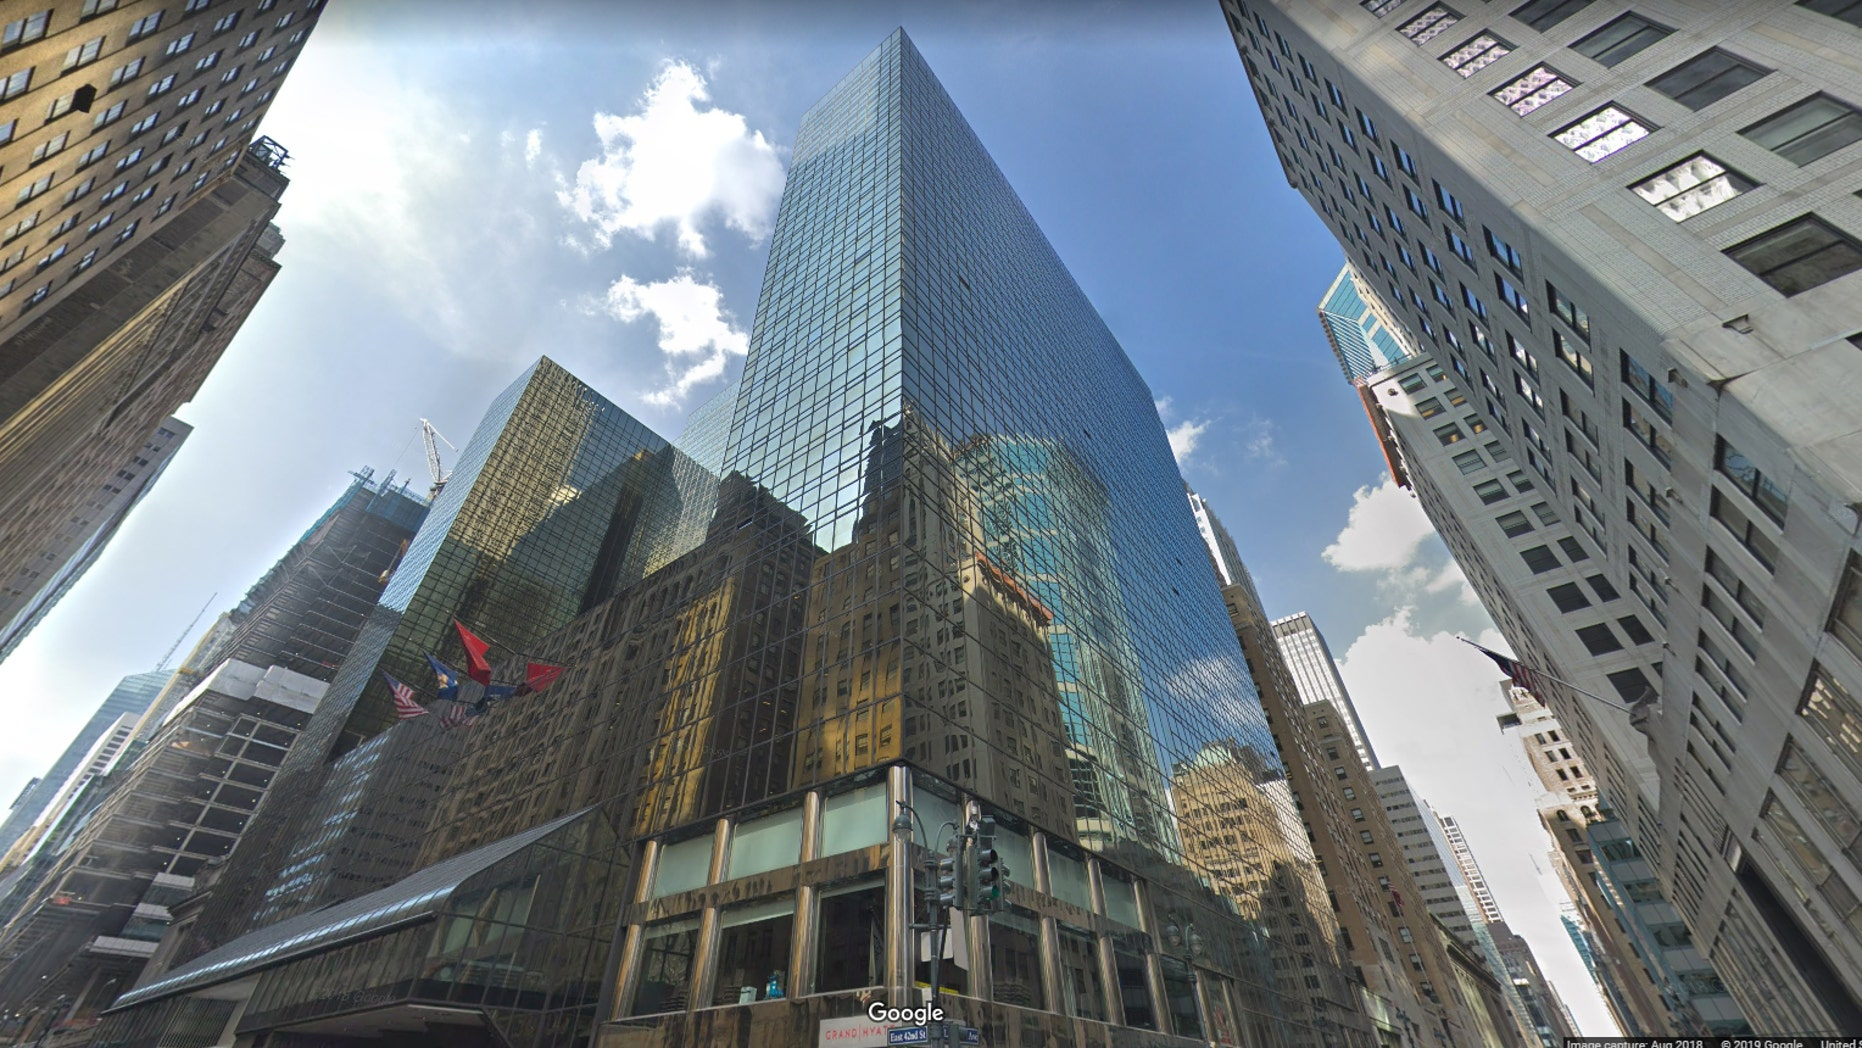 The glass-sheathed tower is being bought out by developers who plan to raze it and replace it with a 2-million-square-foot, mixed-use space.